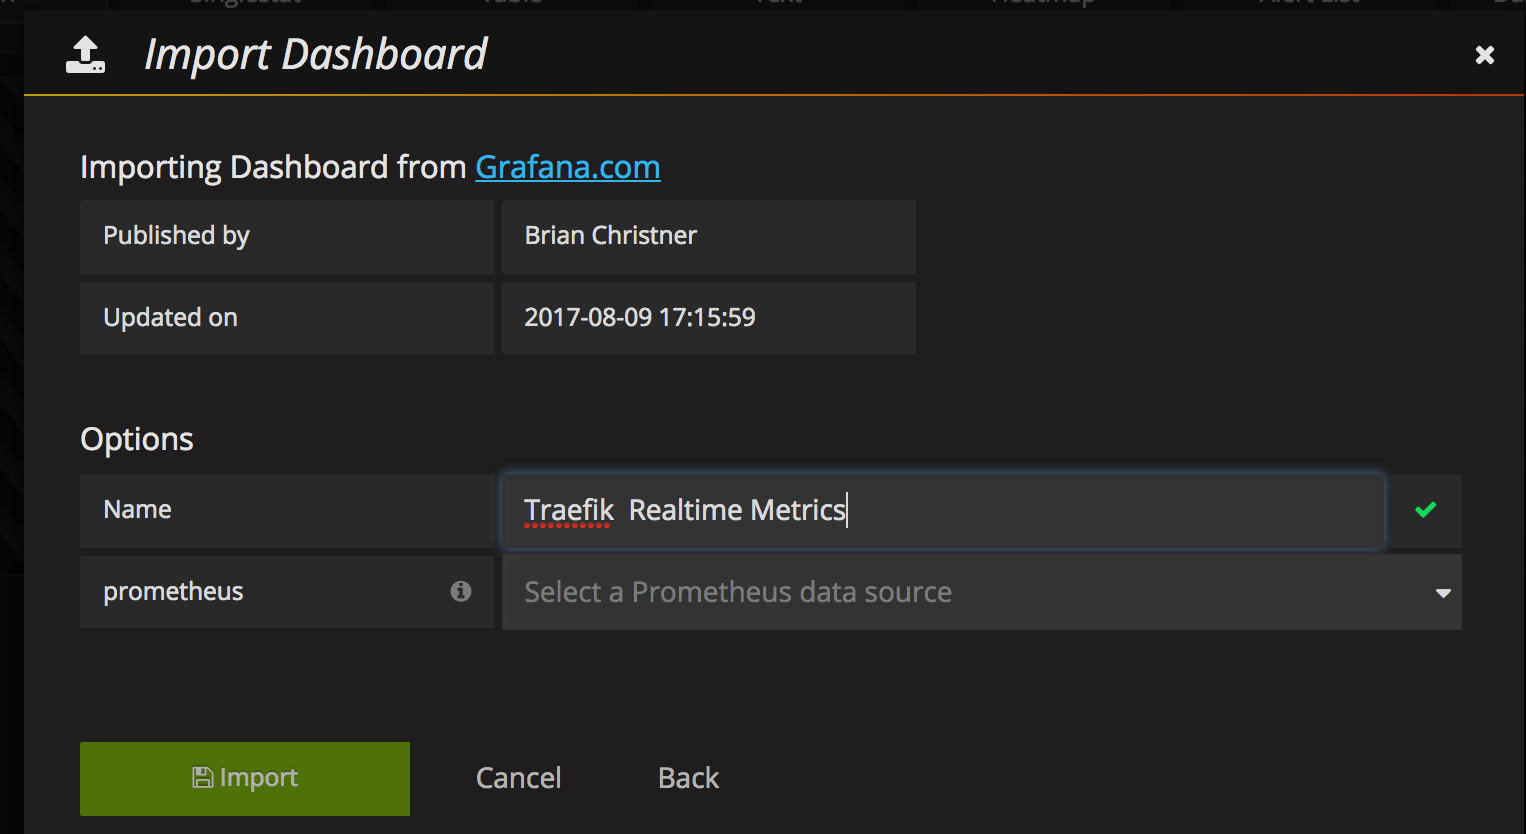 Grafana Dashboard for Traefik Metrics